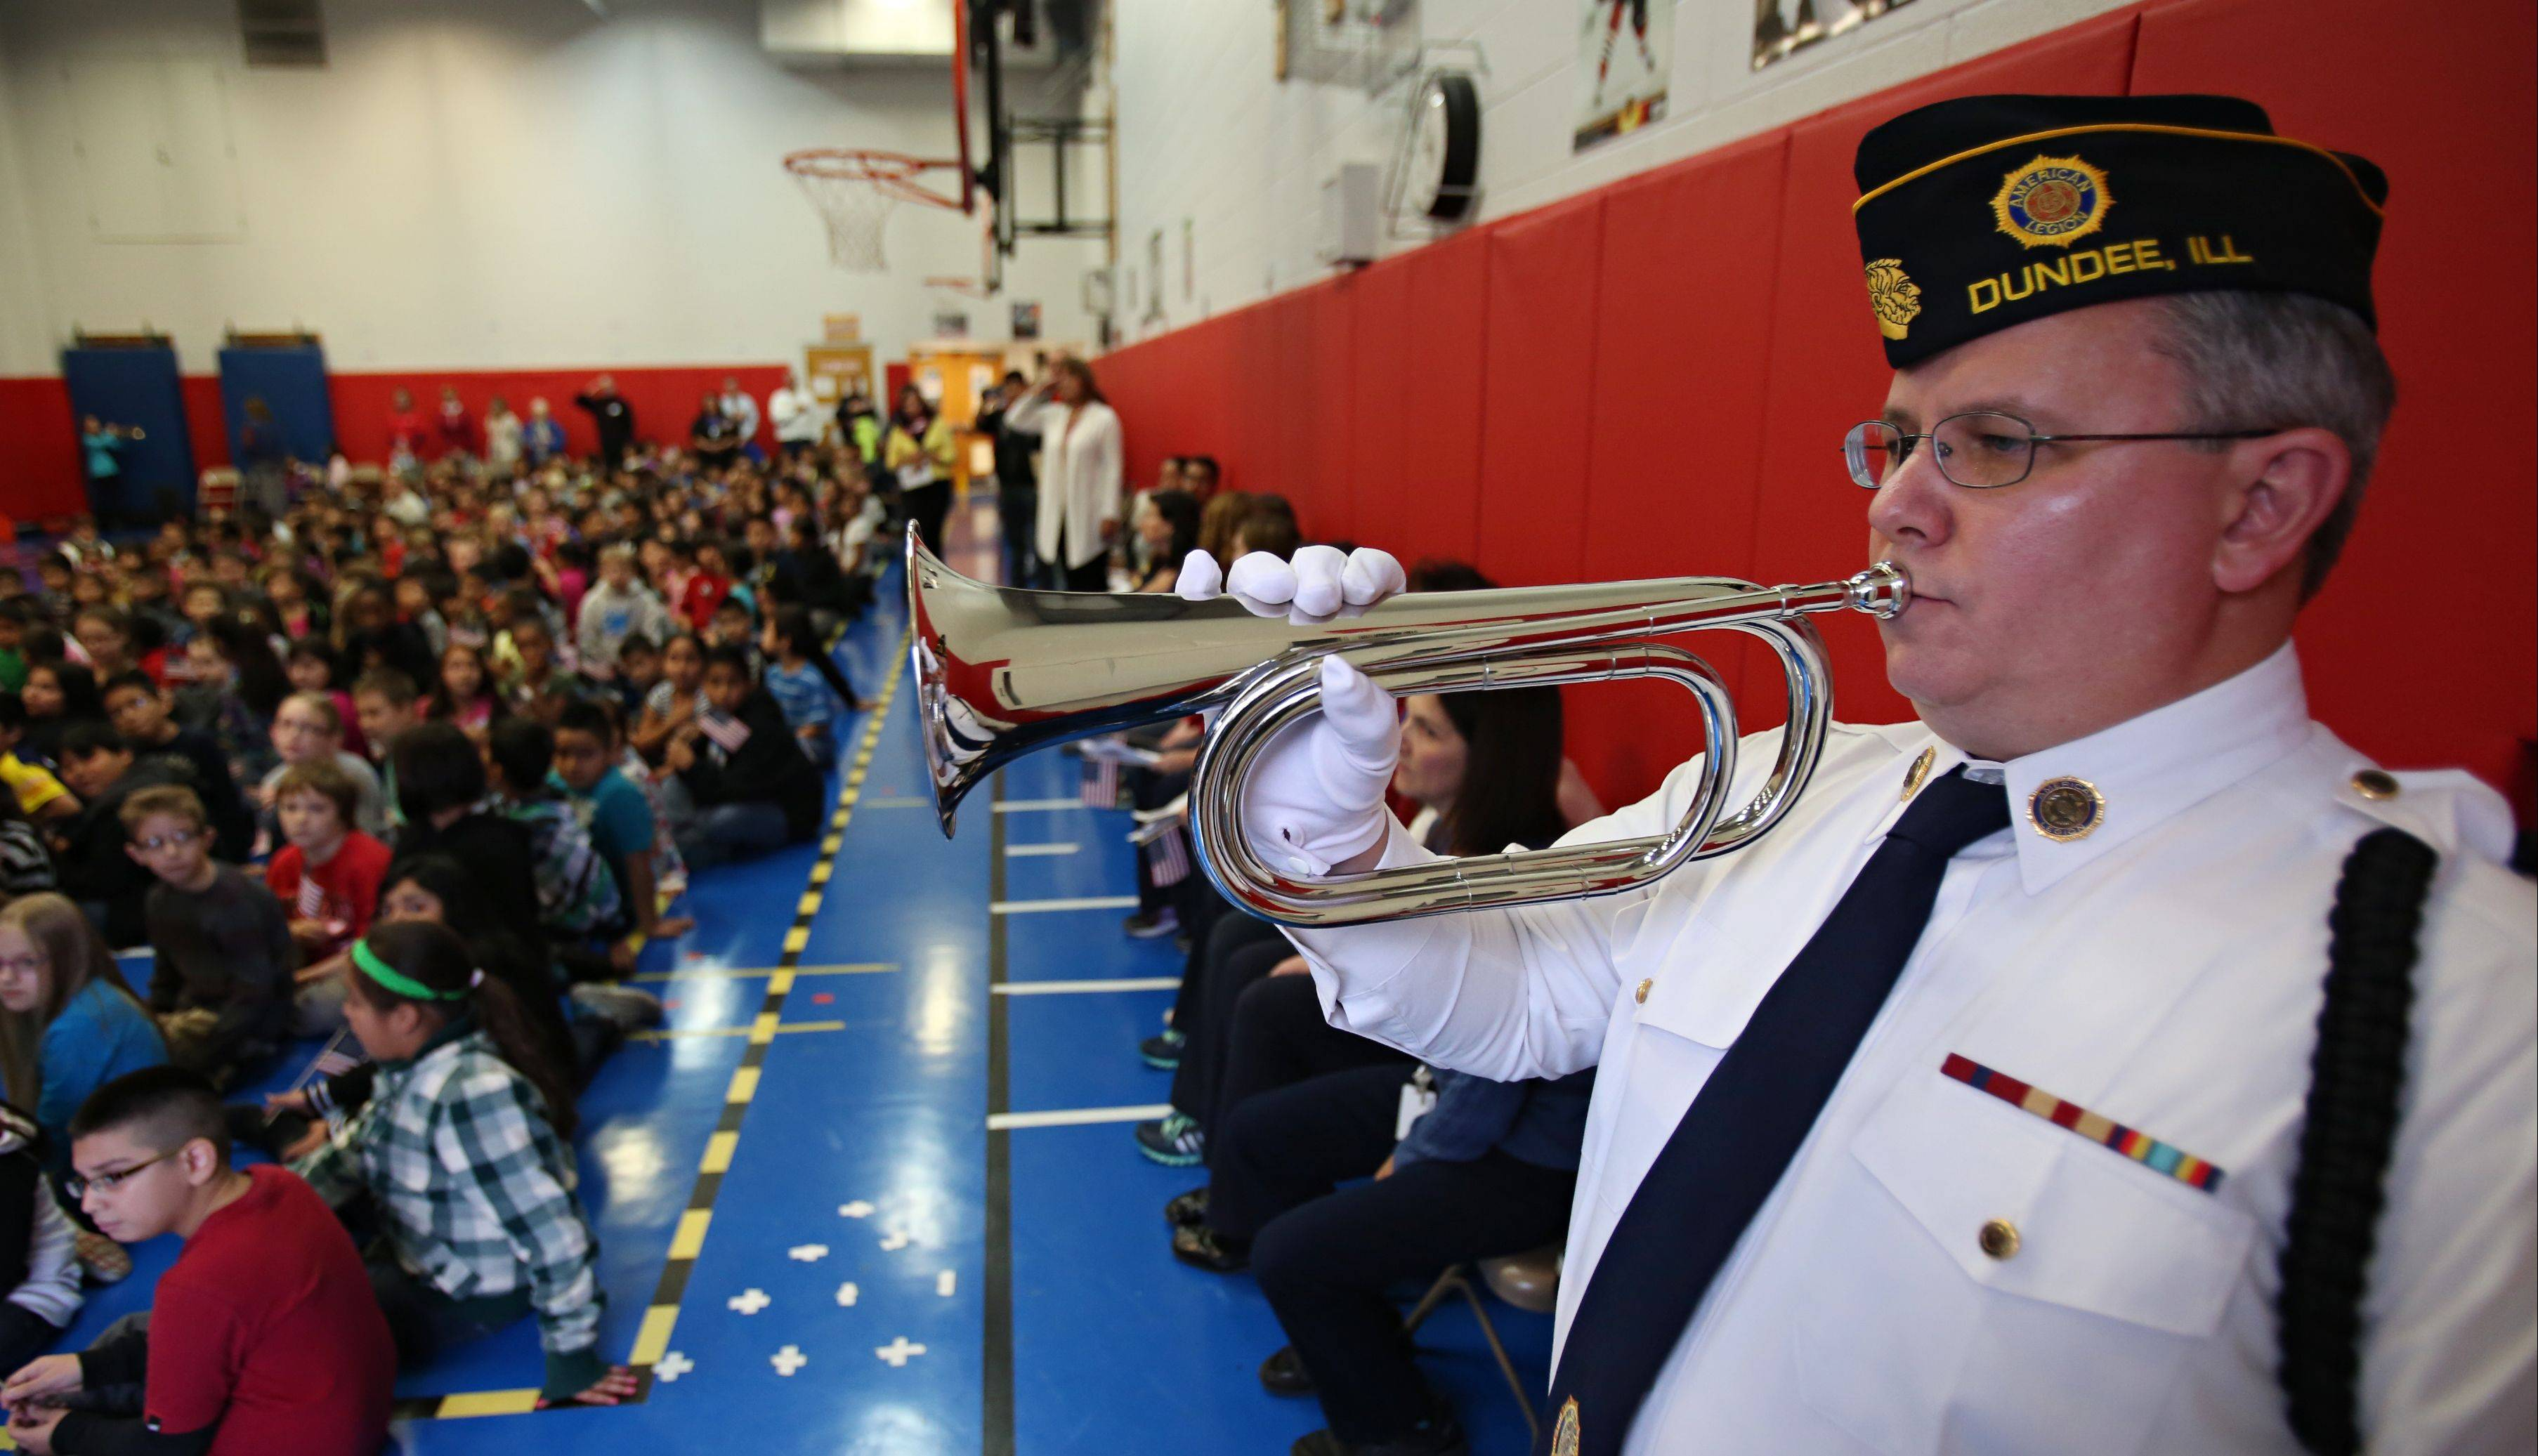 Marine Corps veteran and bugler Don Moore plays taps during the Veterans Day ceremony Monday at Parkview Elementary in Carpentersville. His daughter Gayle played the echo trumpet along with him. Moore is a member of the American Legion Post 679.